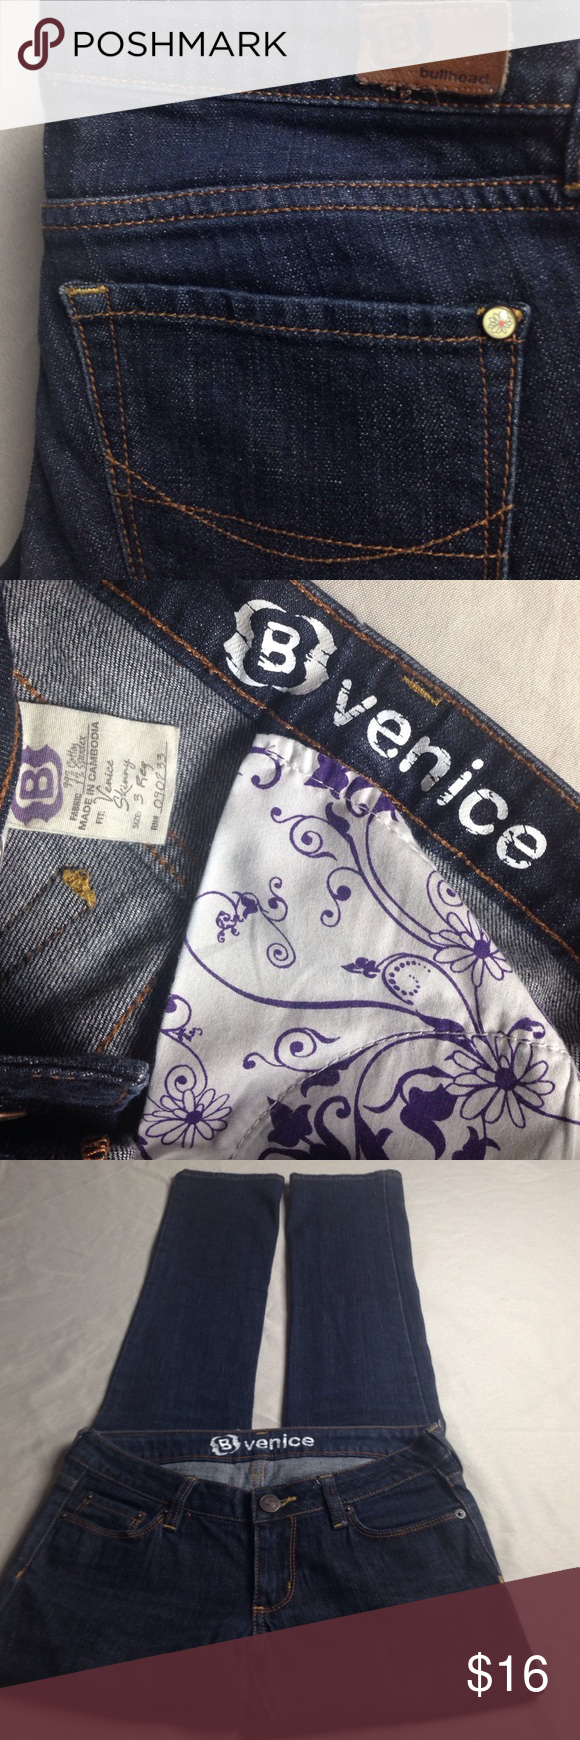 B VENICE STRAIGHT JEANS EXCELLENT  LIKE NEW CUTE B VENICE STRAIGHT JEANS EXCELLENT LIKE NEW CONDITION Size 3 Women's inseam 31 1/2 inches B VENICE Jeans Straight Leg